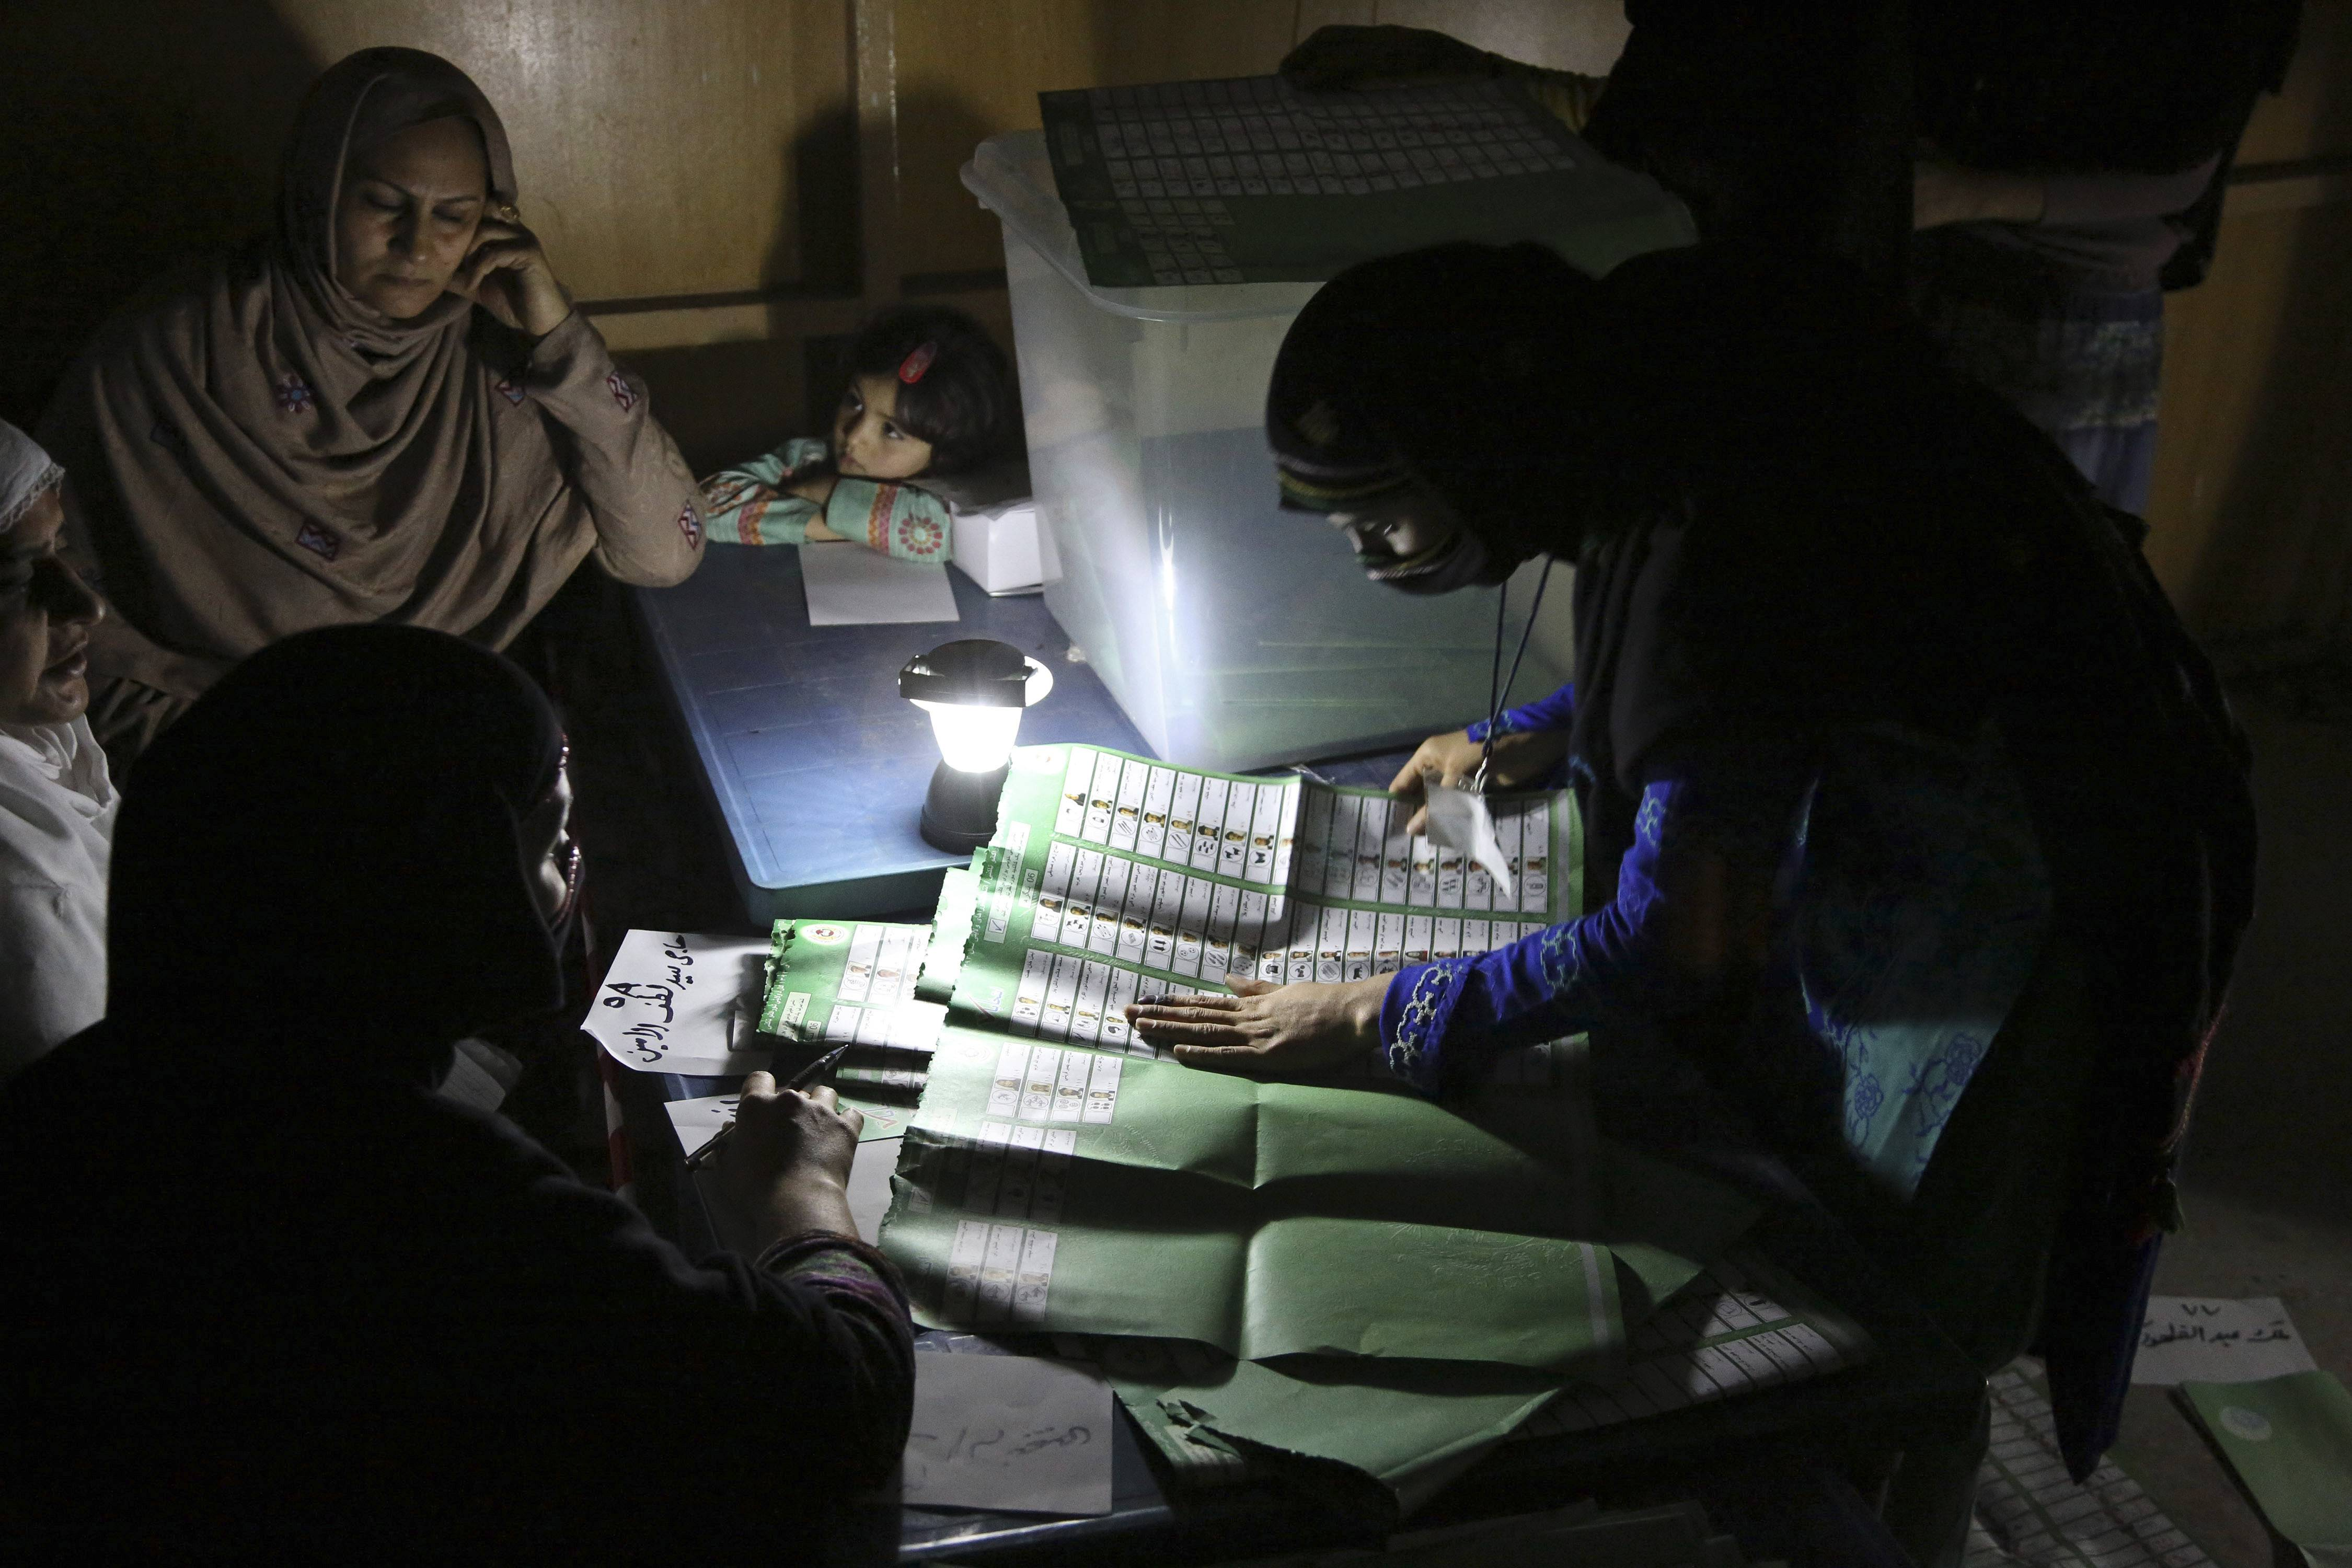 Afghan election workers count ballots by the light of a lantern at a polling station in Jalalabad, east of Kabul, Afghanistan, Saturday.